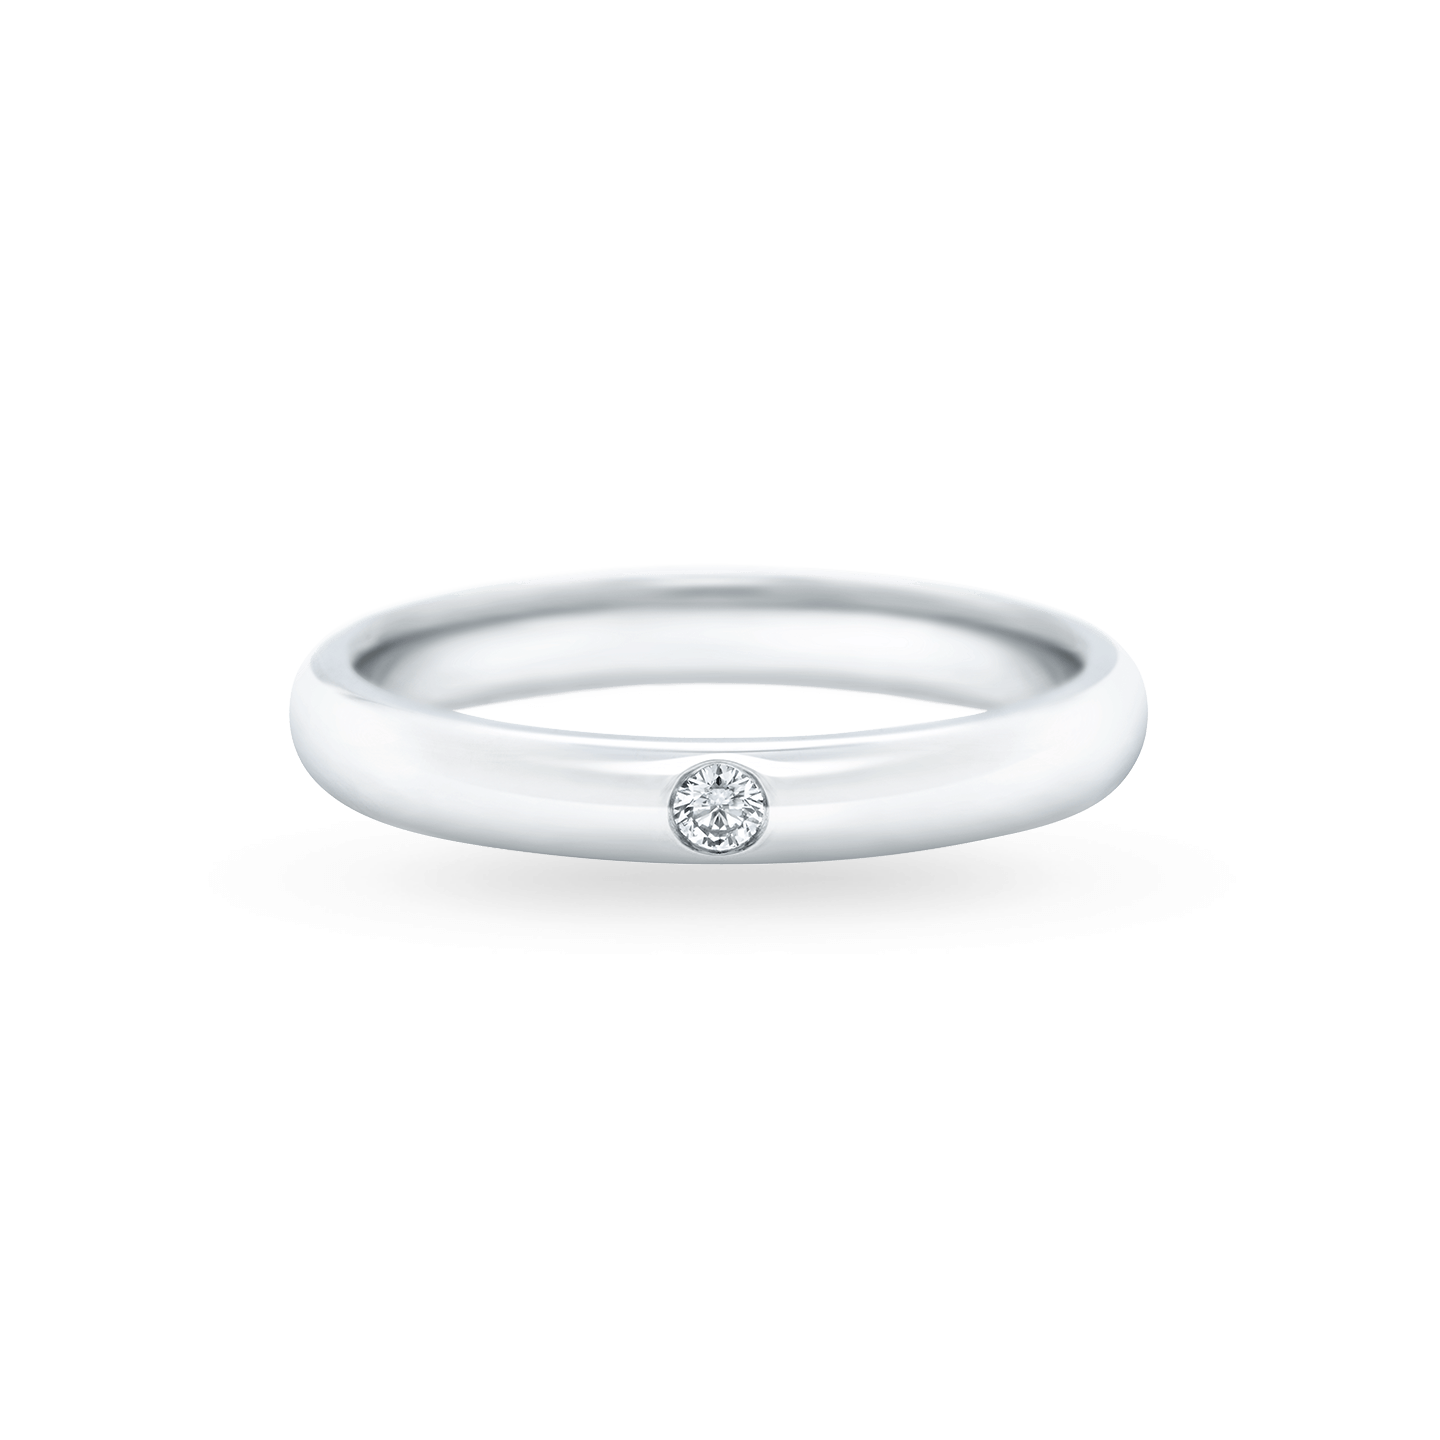 Round Brilliant Single Diamond Wedding Band, Product Image 1